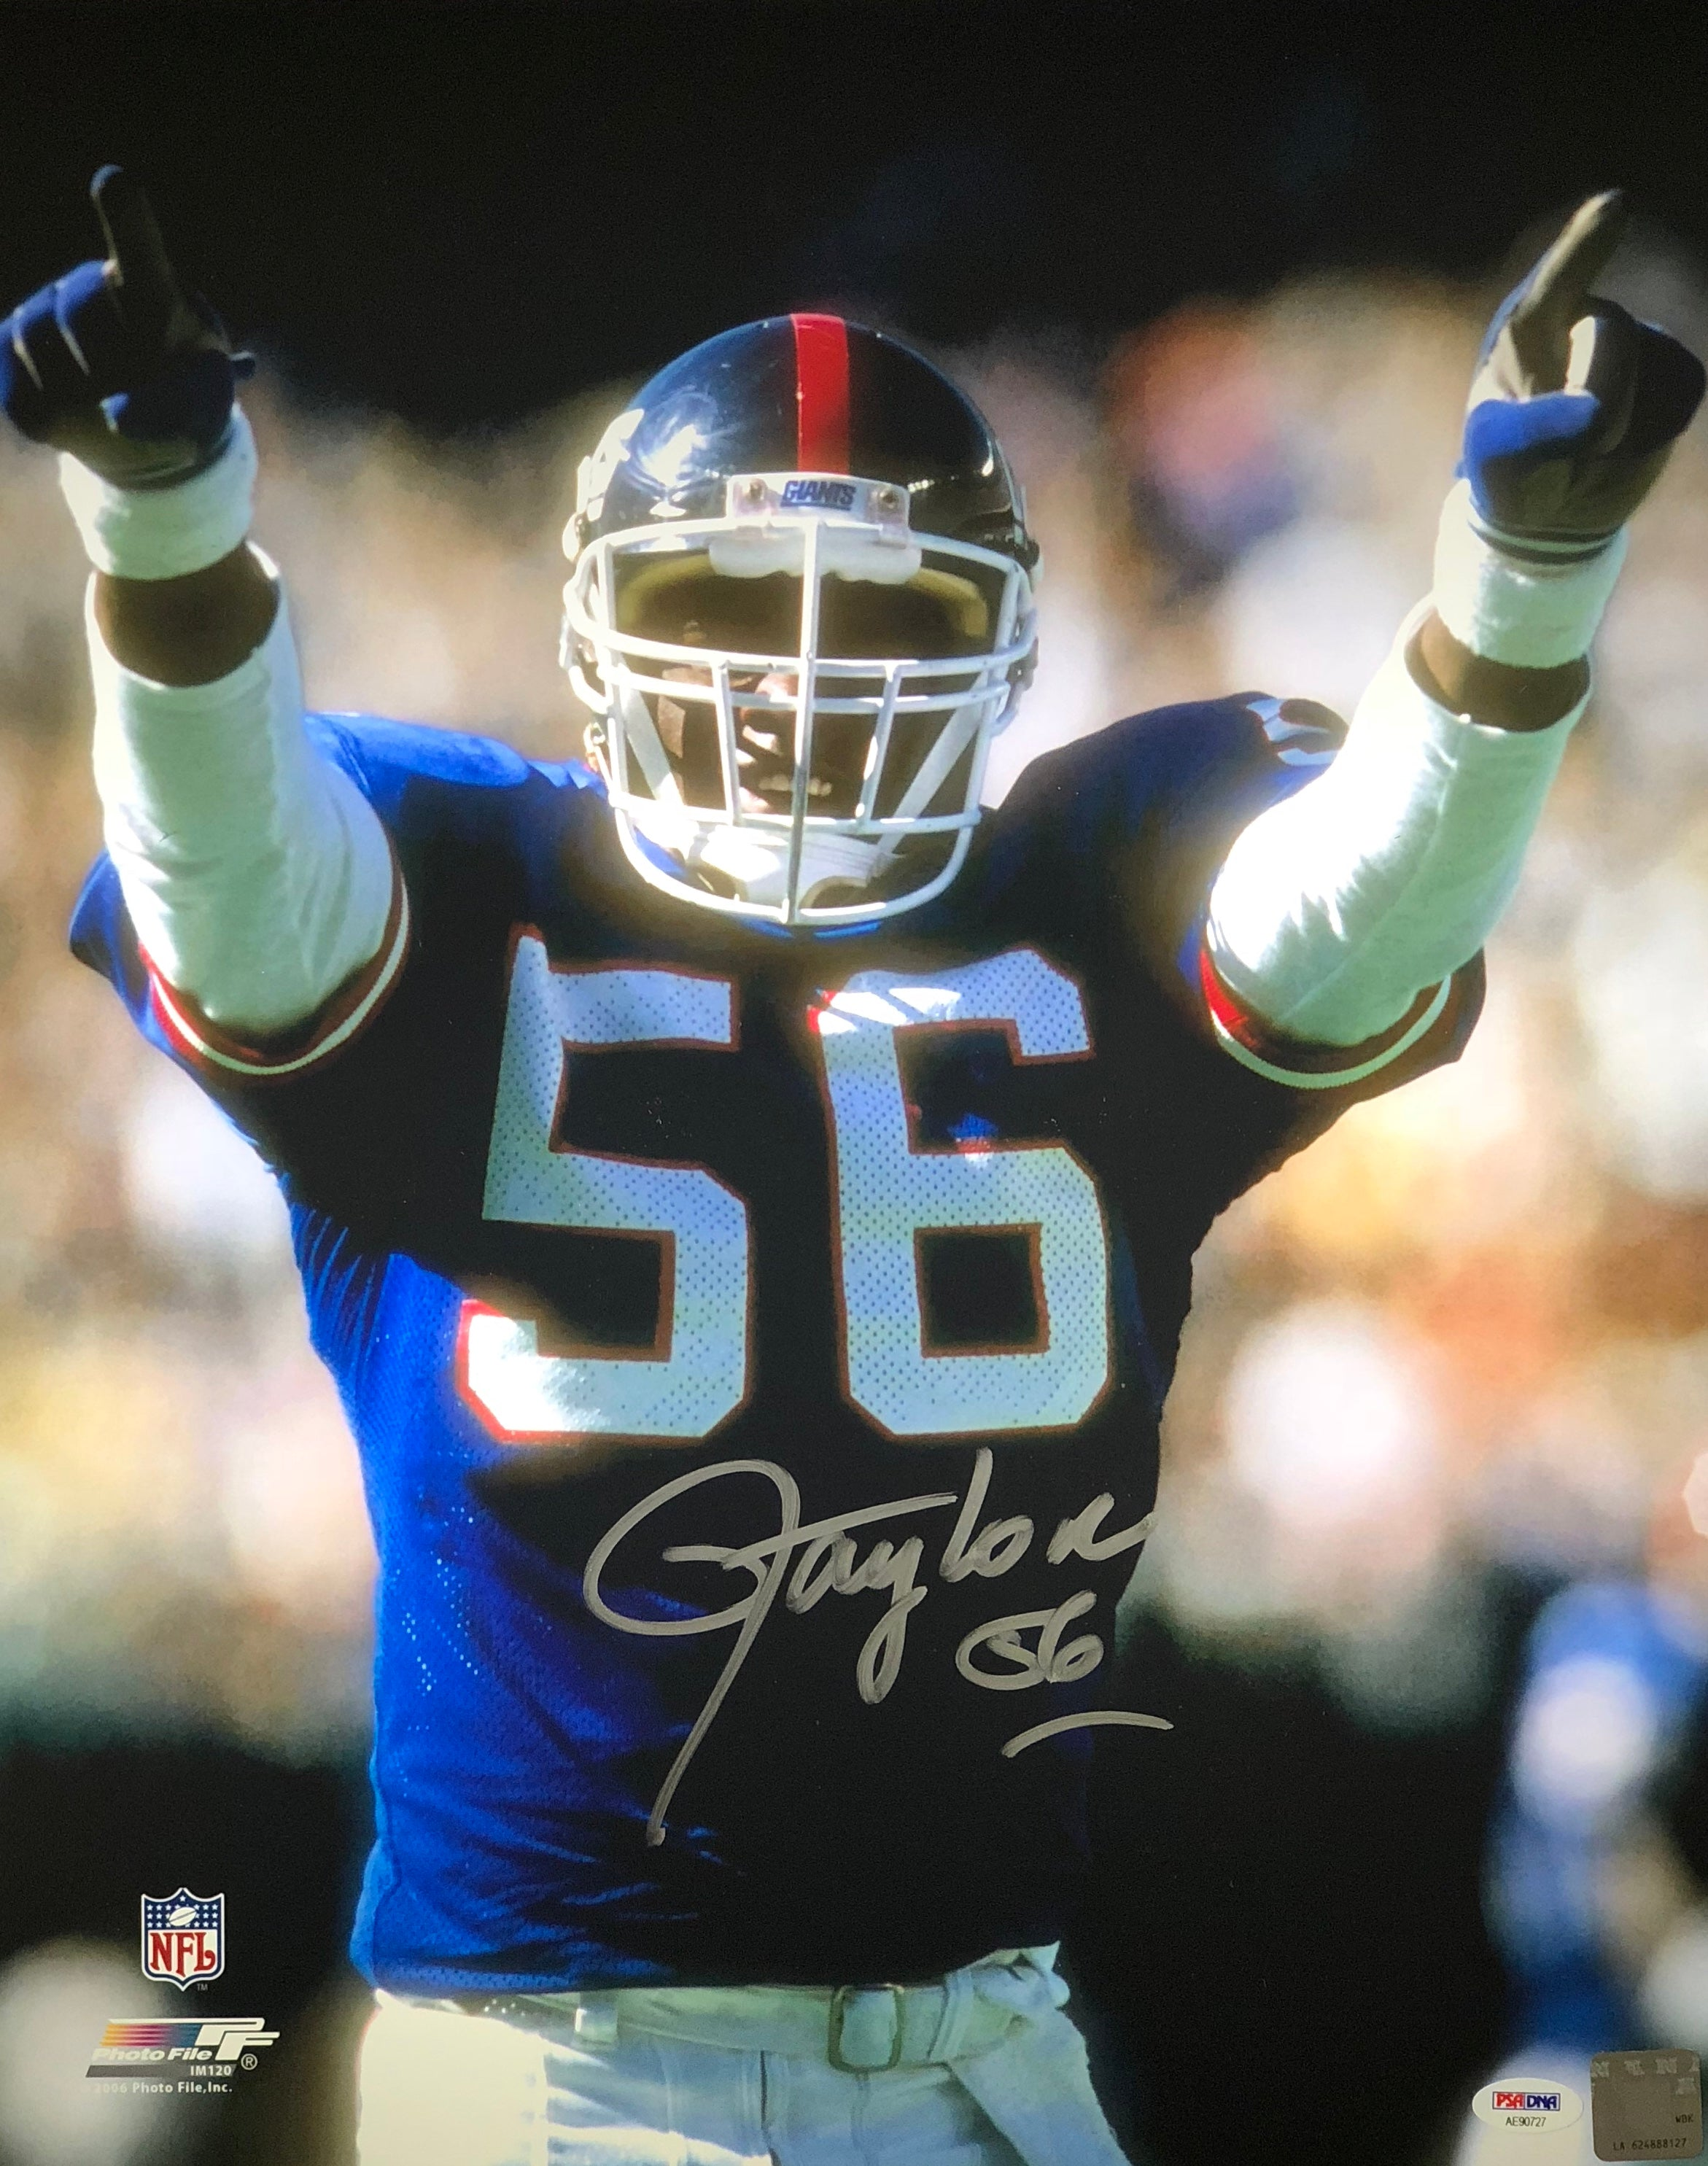 separation shoes e57f8 f4281 Lawrence Taylor autographed 16x20 NFL New York Giants PSA MVP Photo File